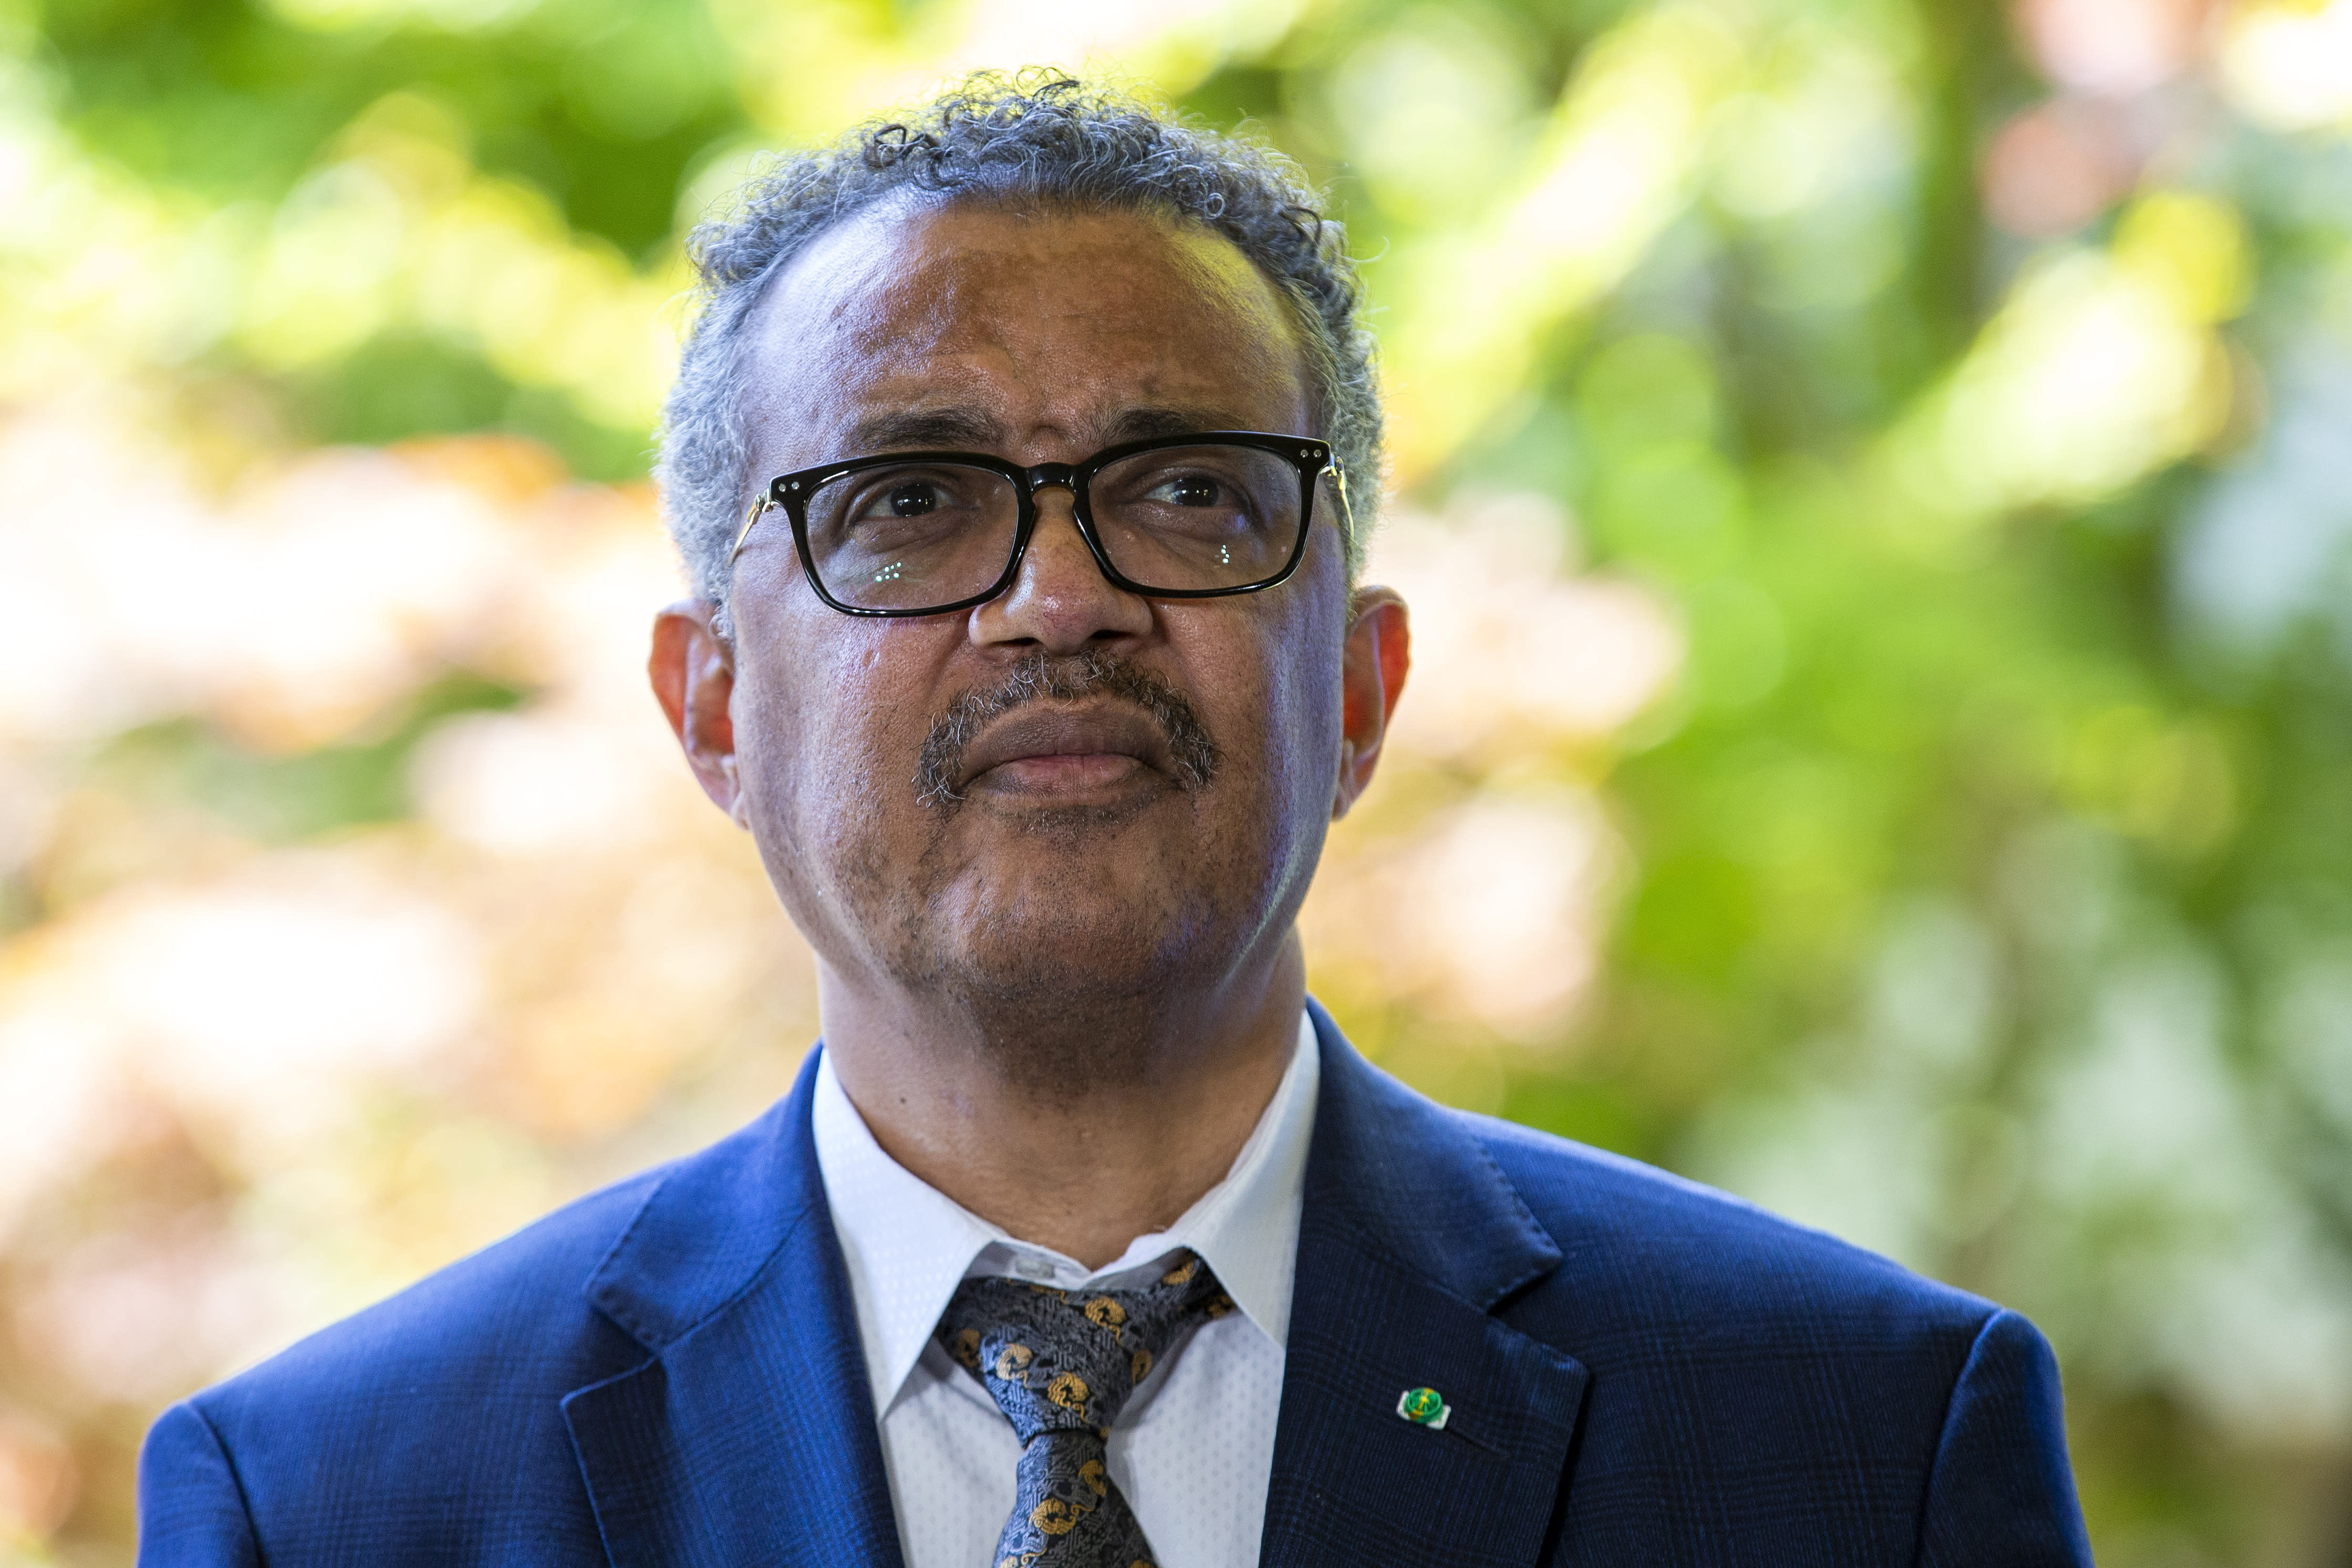 """FILE - In this Thursday, June 25, 2020 file photo, Tedros Adhanom Ghebreyesus, Director General of the World Health Organization (WHO), attends a press conference, at the (WHO) headquarters in Geneva, Switzerland. The World Health Organization chief on Monday, July 13 slammed government leaders whose mixed messages have eroded public trust on the coroanvirus. Tedros Adhanom Ghebreyesus warned that their failures to stop their countries' spiraling outbreaks means there's no return to normal """"for the foreseeable future."""" (Salvatore Di Nolfi/Keystone via AP, File)"""